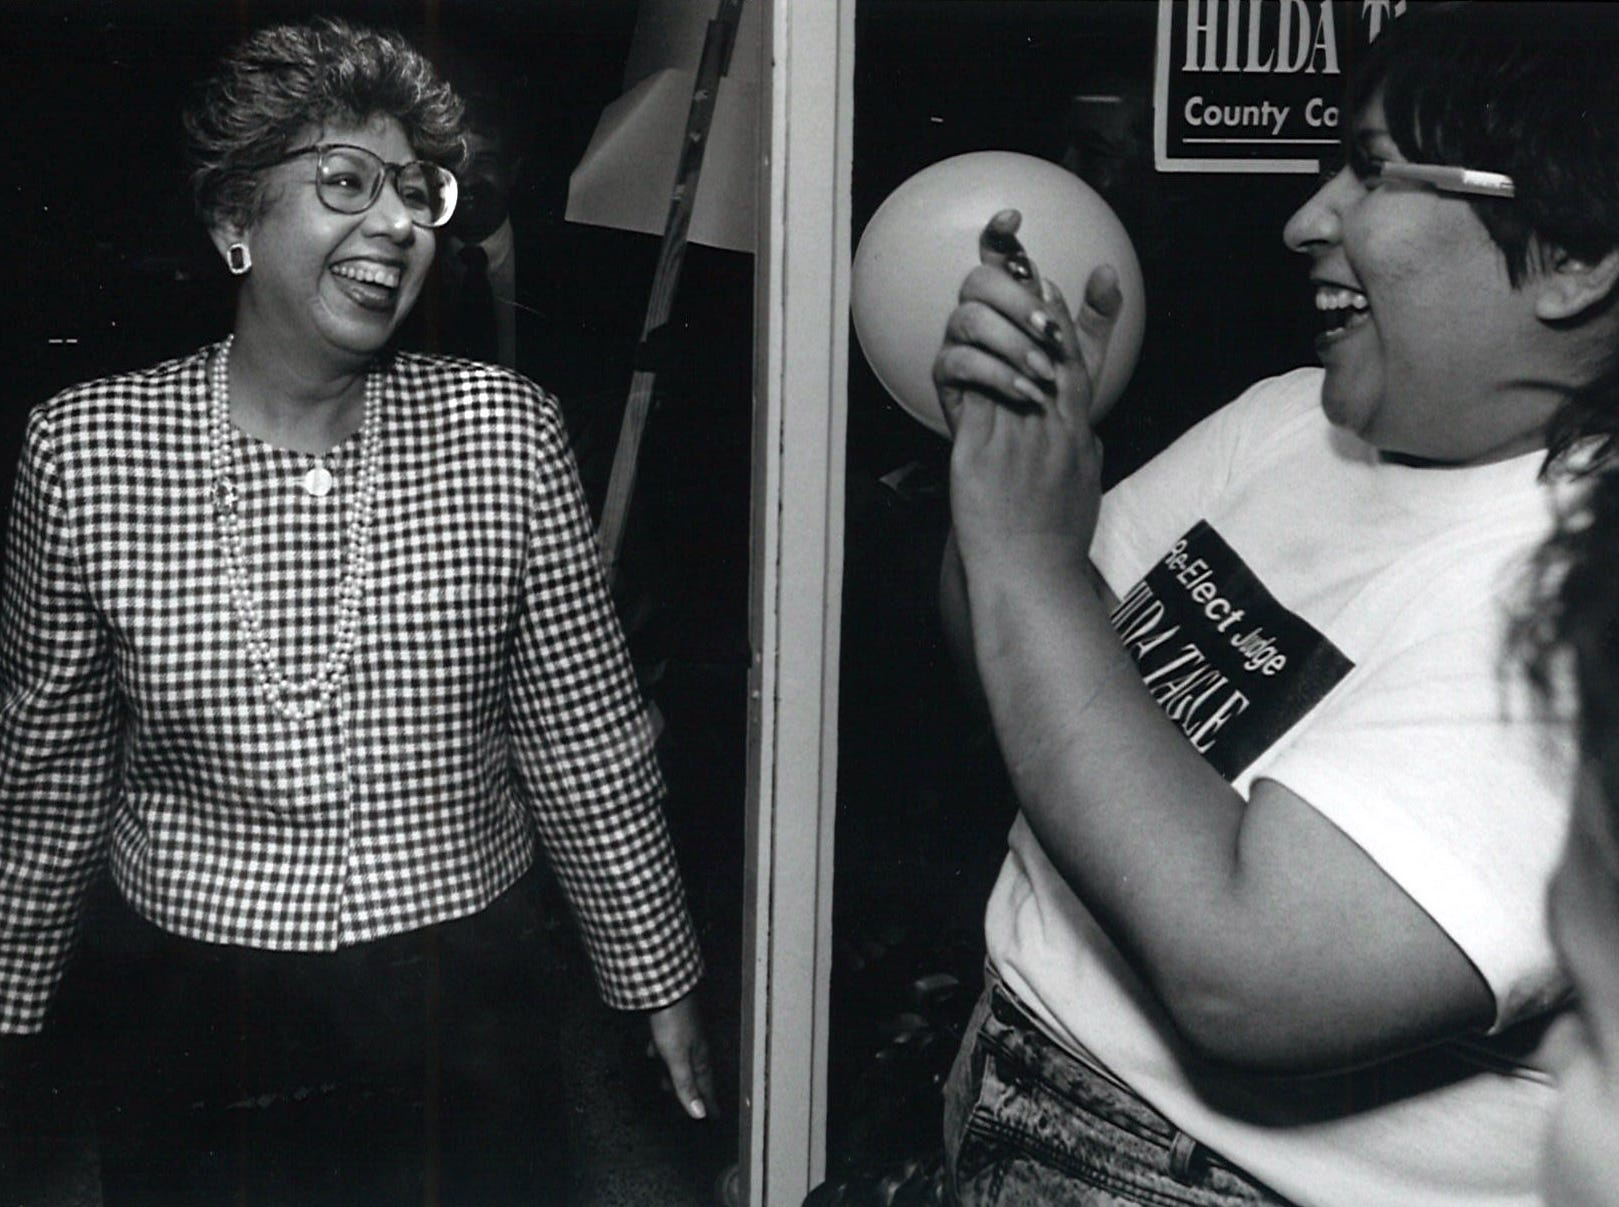 Judge Hilda Tagle (left) arrives at her campaign headquarters on election night, March 13, 1990 as her court reporter Sonia Trevino (right) cheers. Tagle was reelected to the Court-at-Law No. 3 bench.